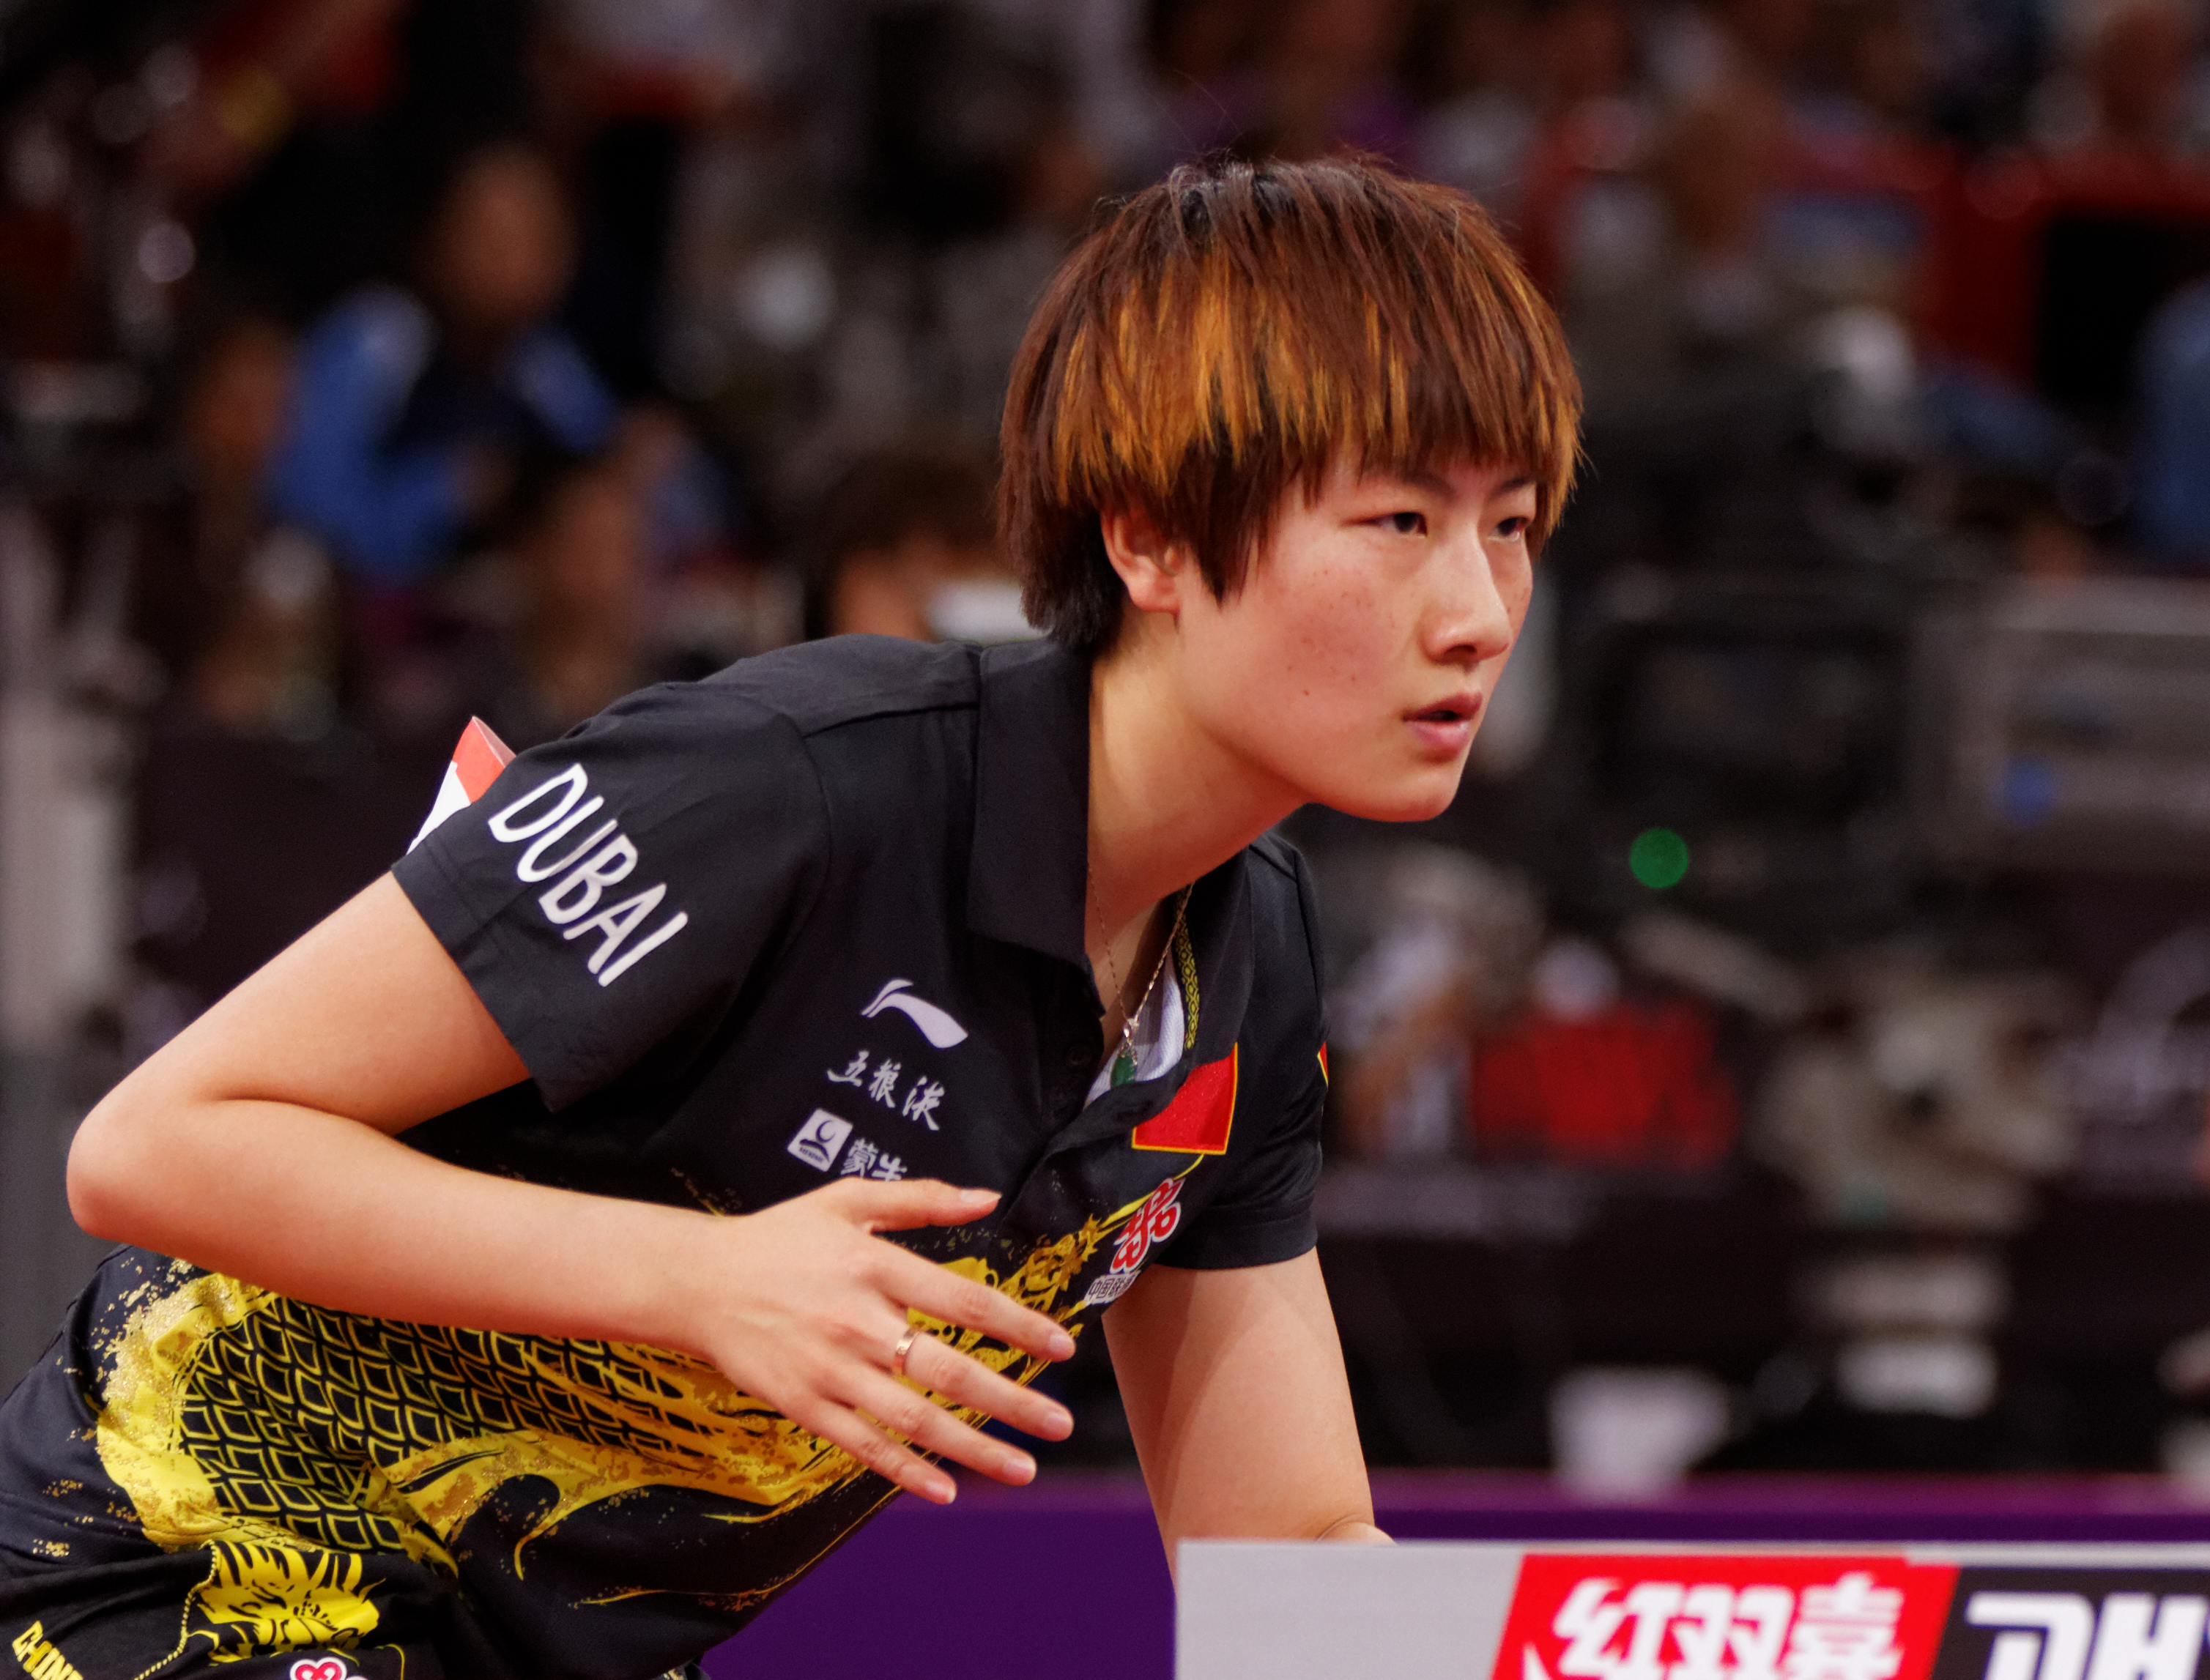 The Best Female Ping Pong Player